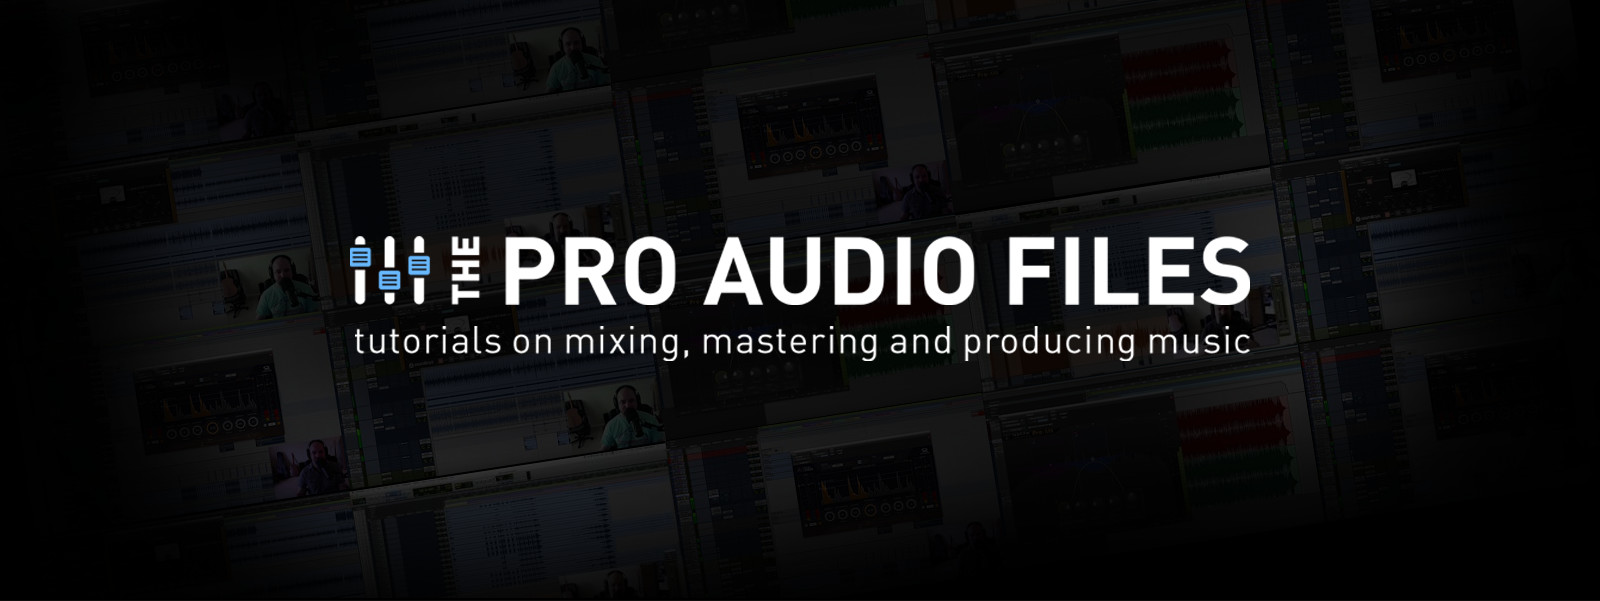 Welcome to Pro Audio Files!